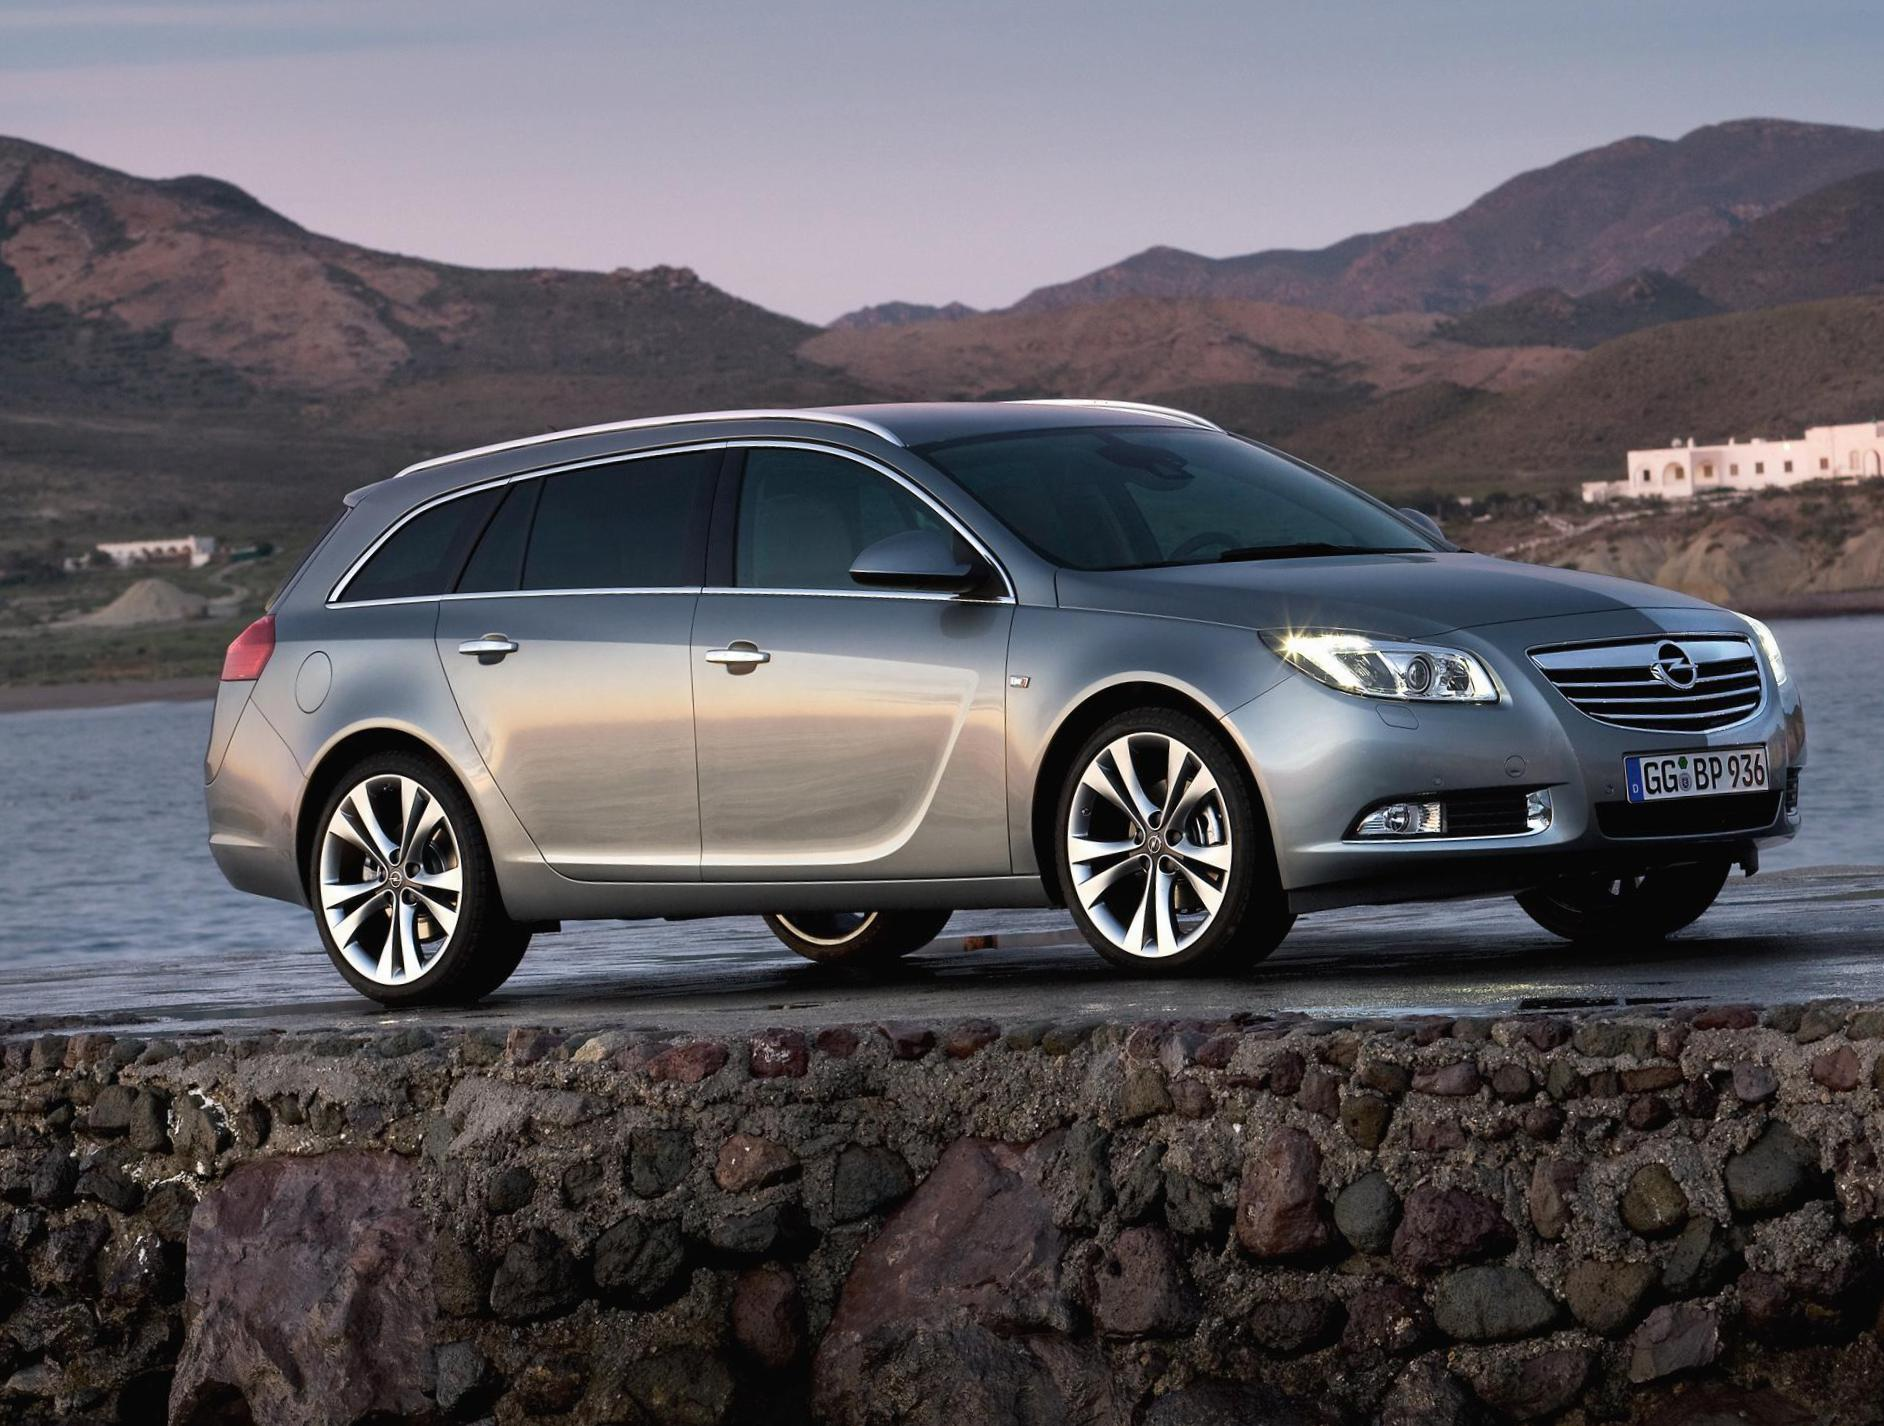 Insignia Sports Tourer Opel cost 2013